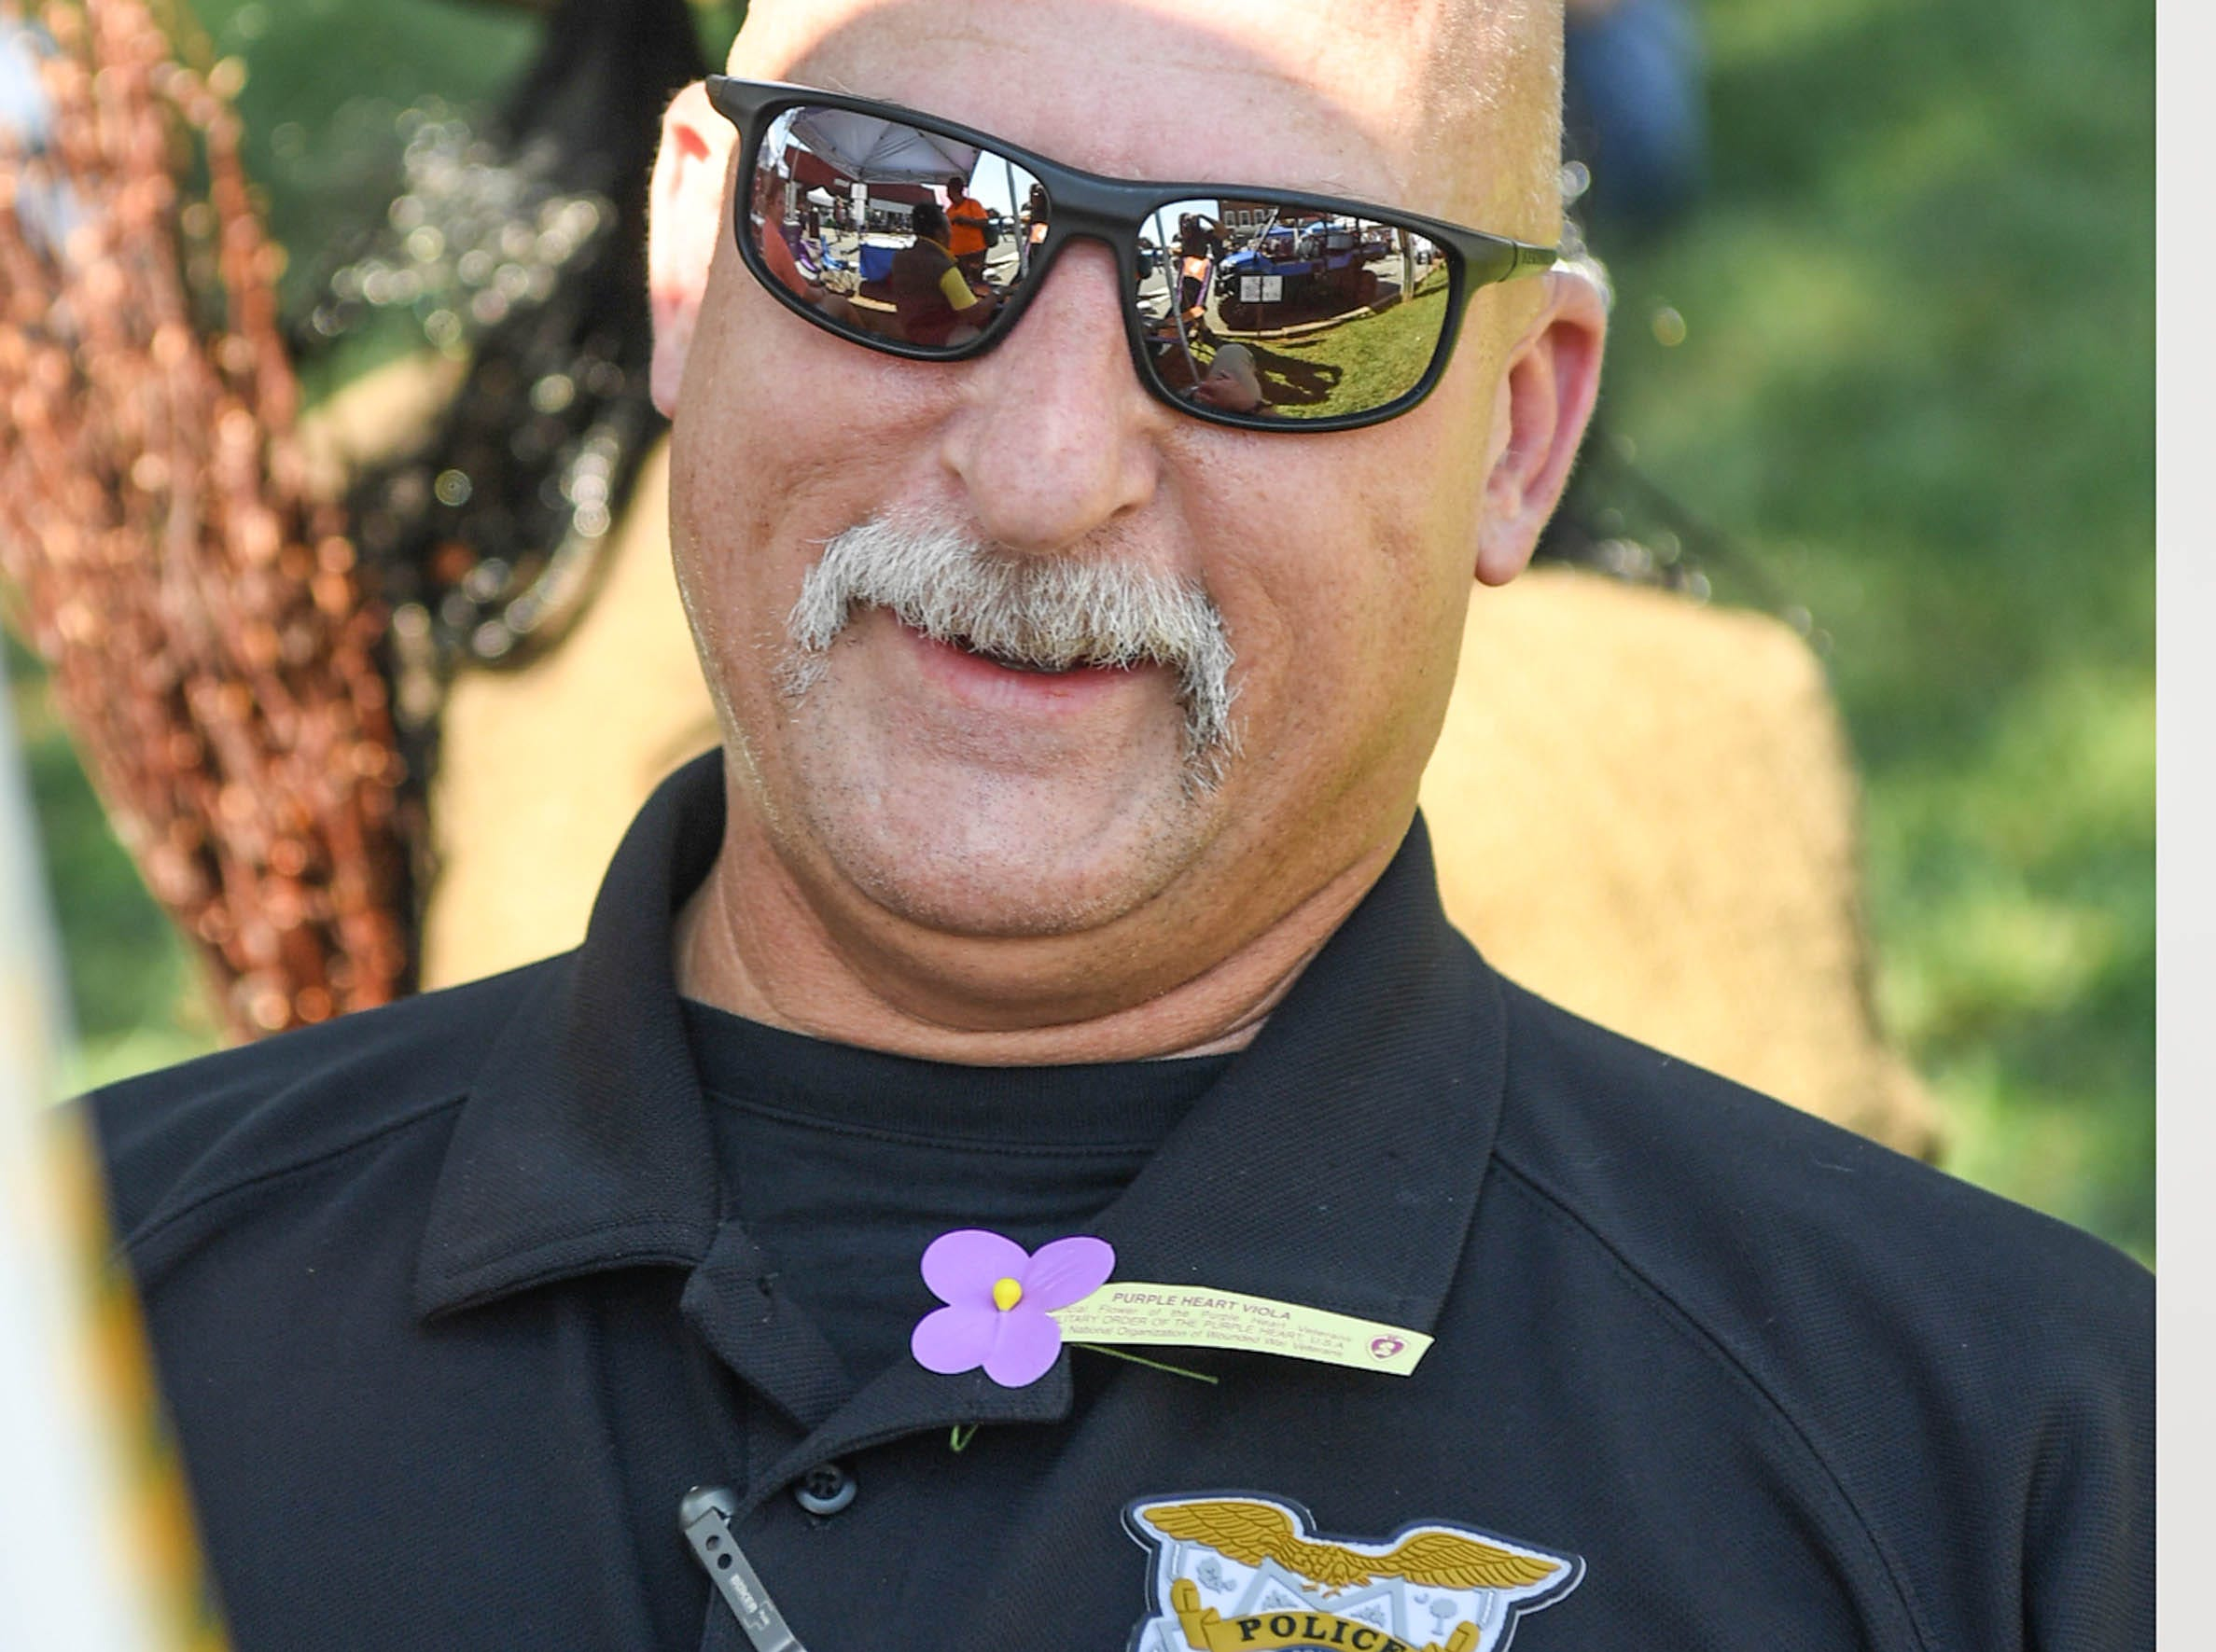 Pendleton Chief of Police Doyle Burdette at the 20th Pendleton Fall Harvest Festival in the town square on Saturday, October 5, 2018.